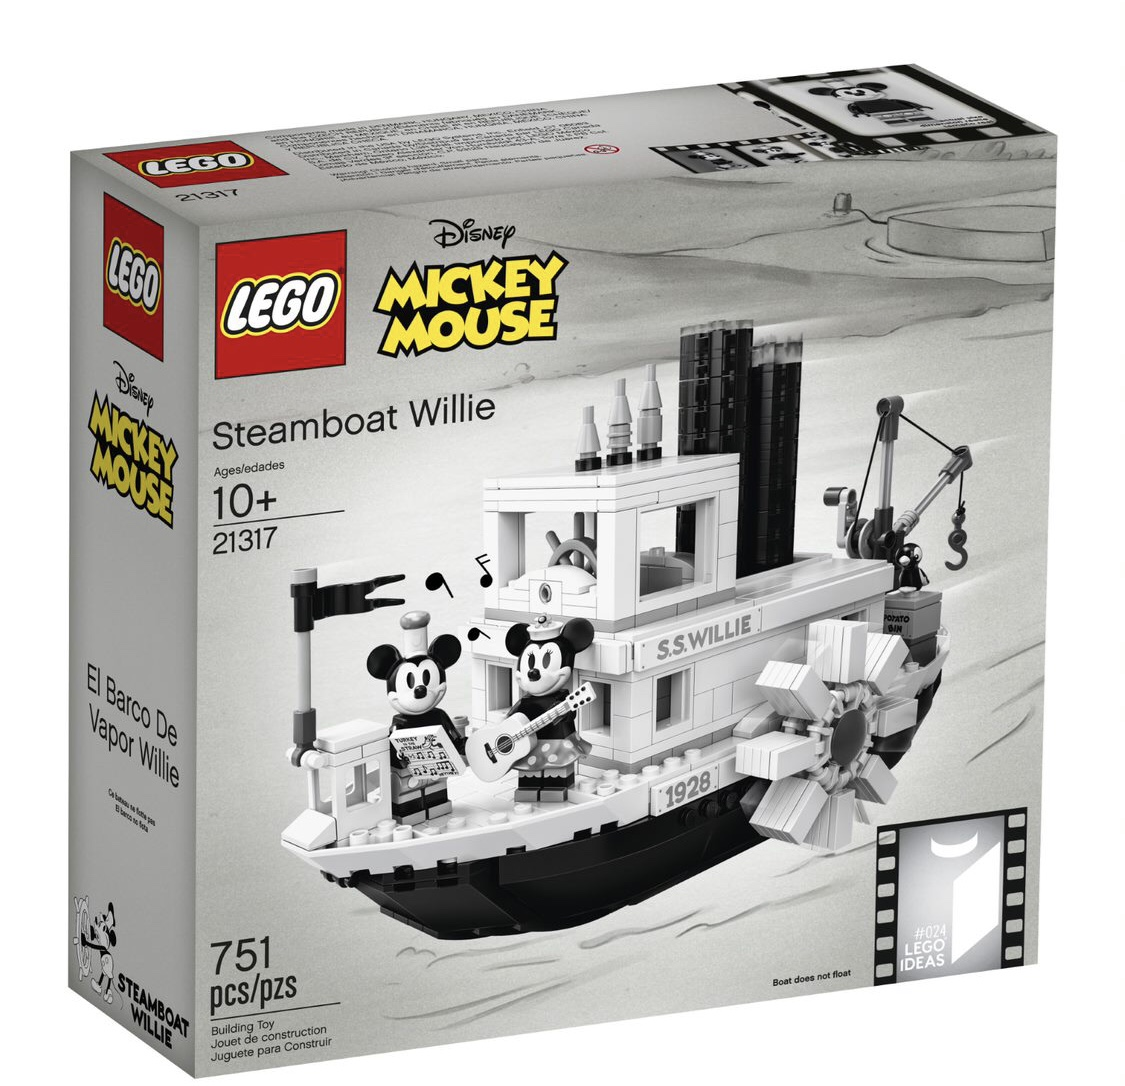 LEGO Steamboat Willie Set Reveal! Details Below! 1